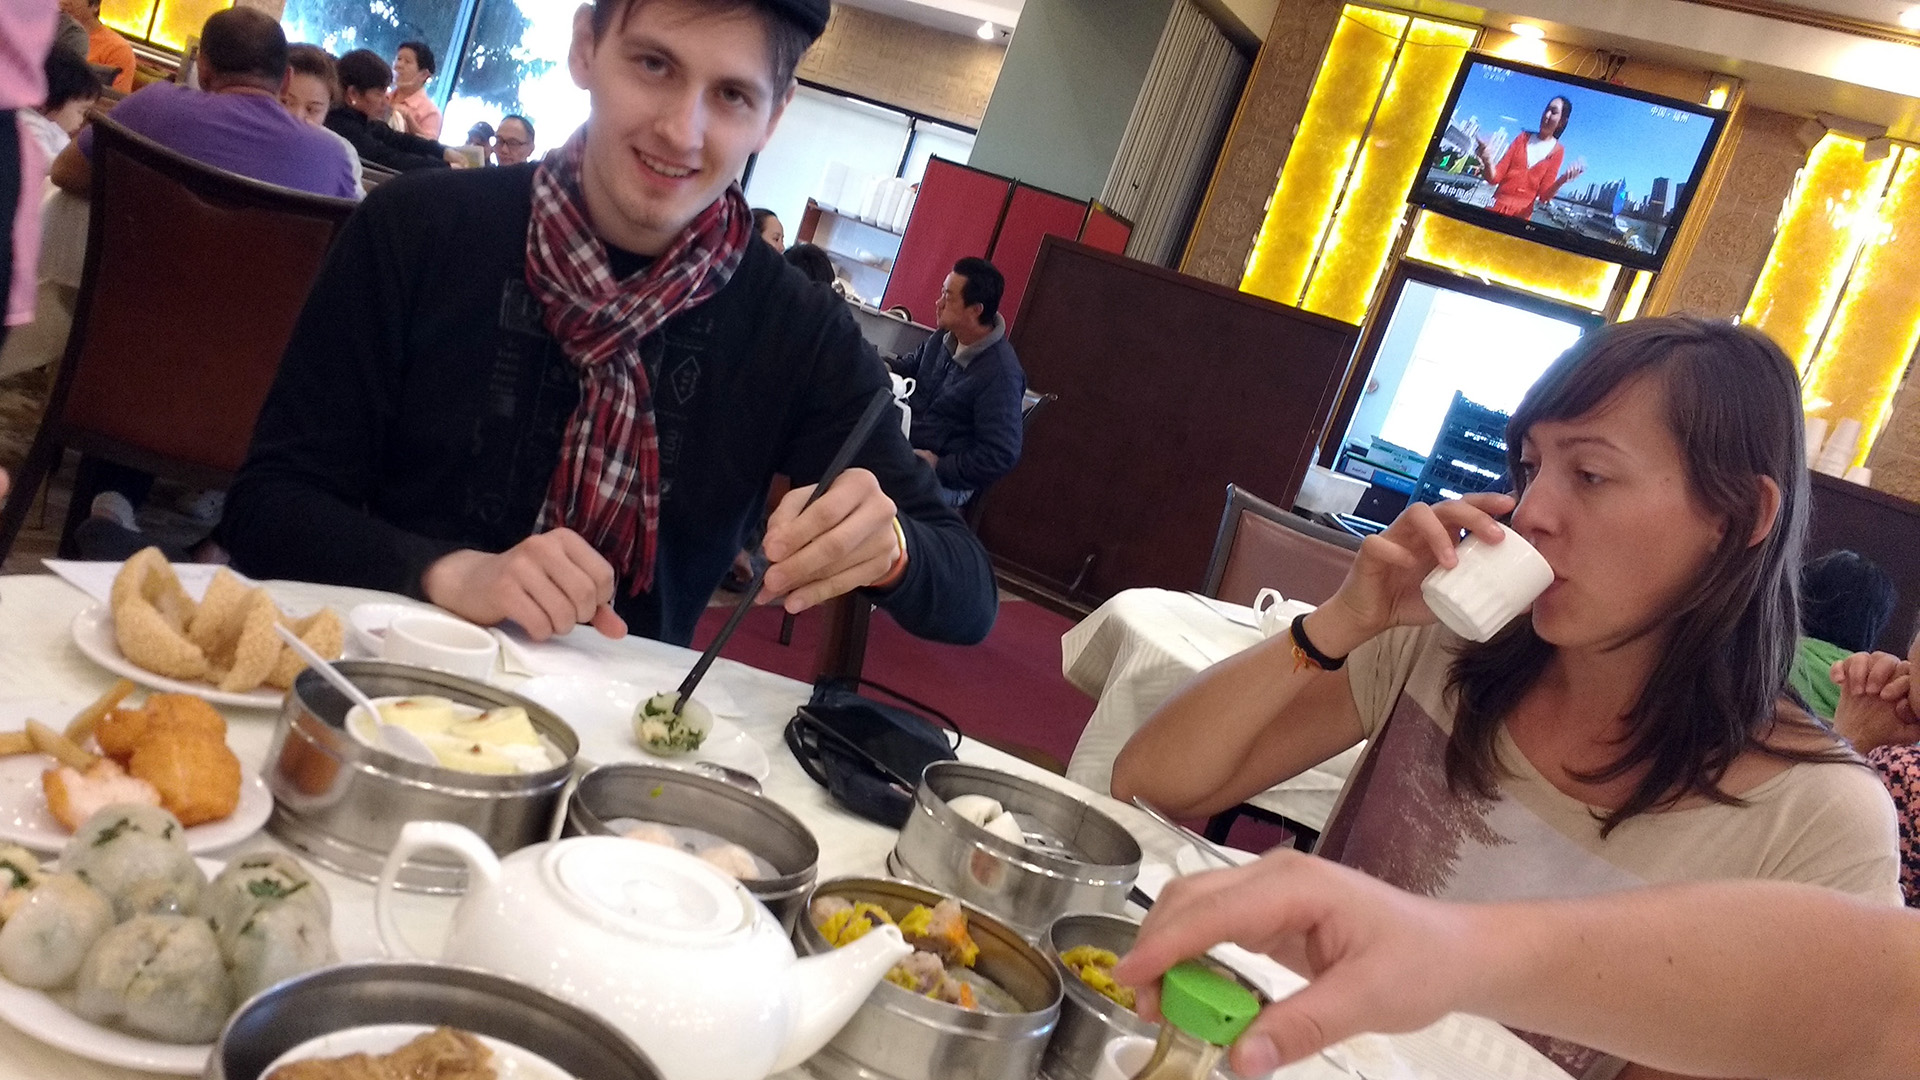 2 people seated at a table eating dim sum